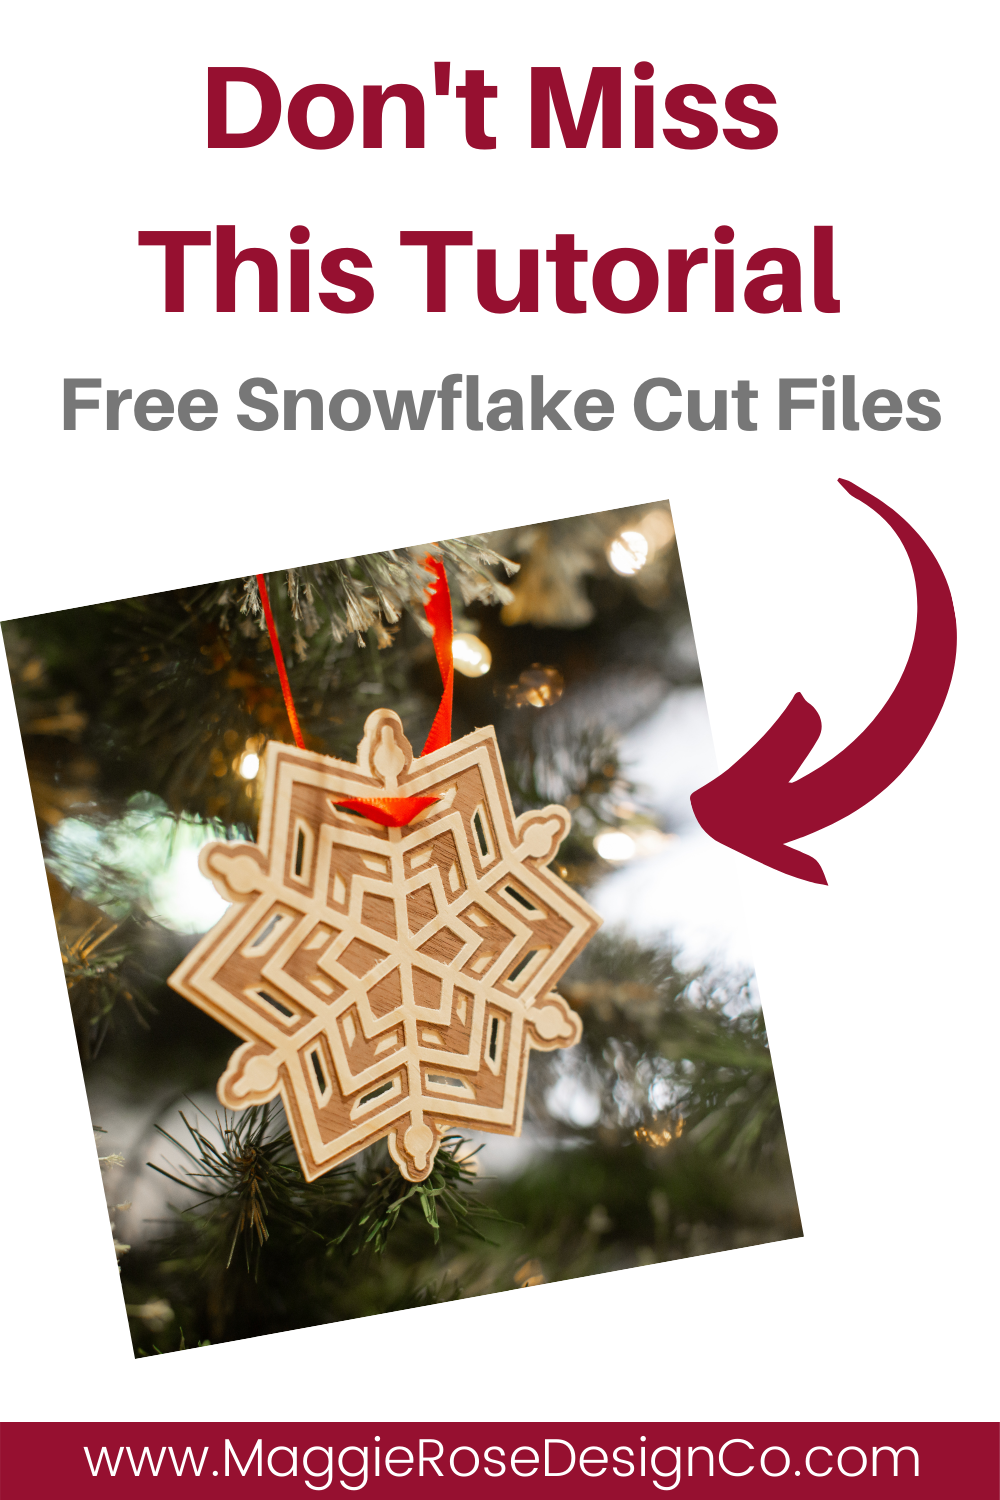 How To Make A Diy Rustic Snowflake Ornament Maggie Rose Design Co Christmas Ornaments To Make Christmas Crafts To Make Snowflake Ornaments